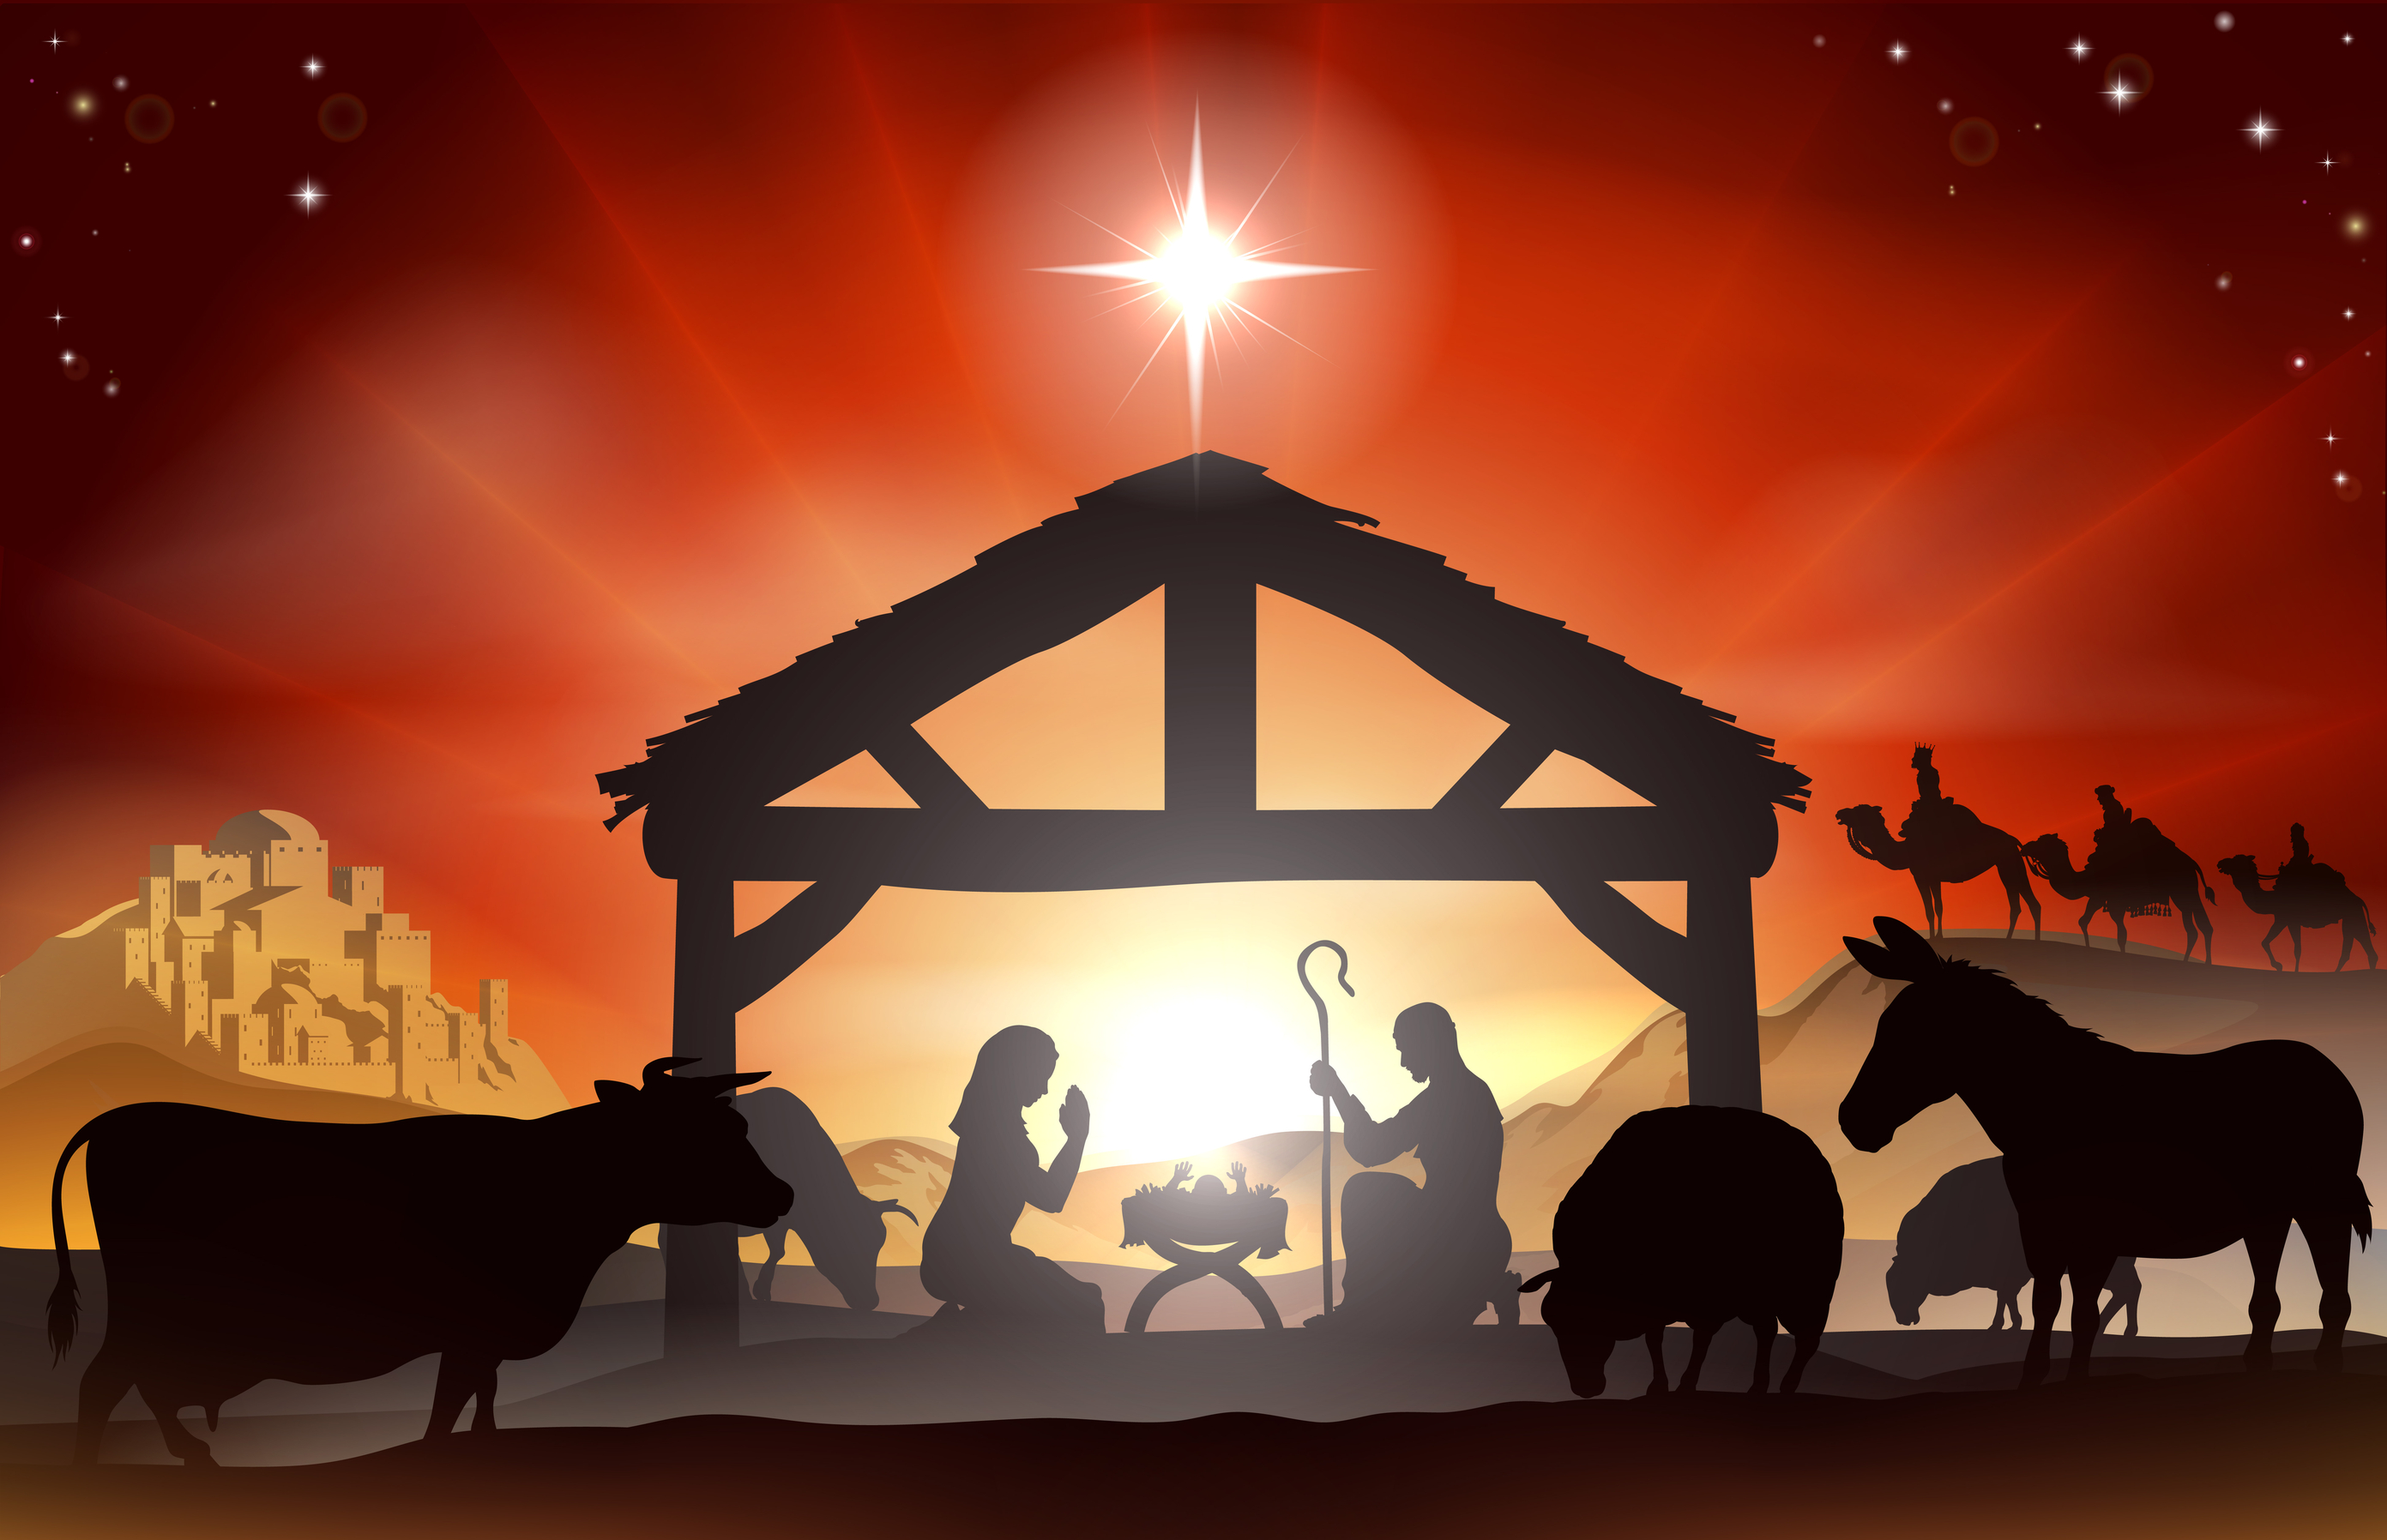 It's just a graphic of Witty Nativity Christmas Images